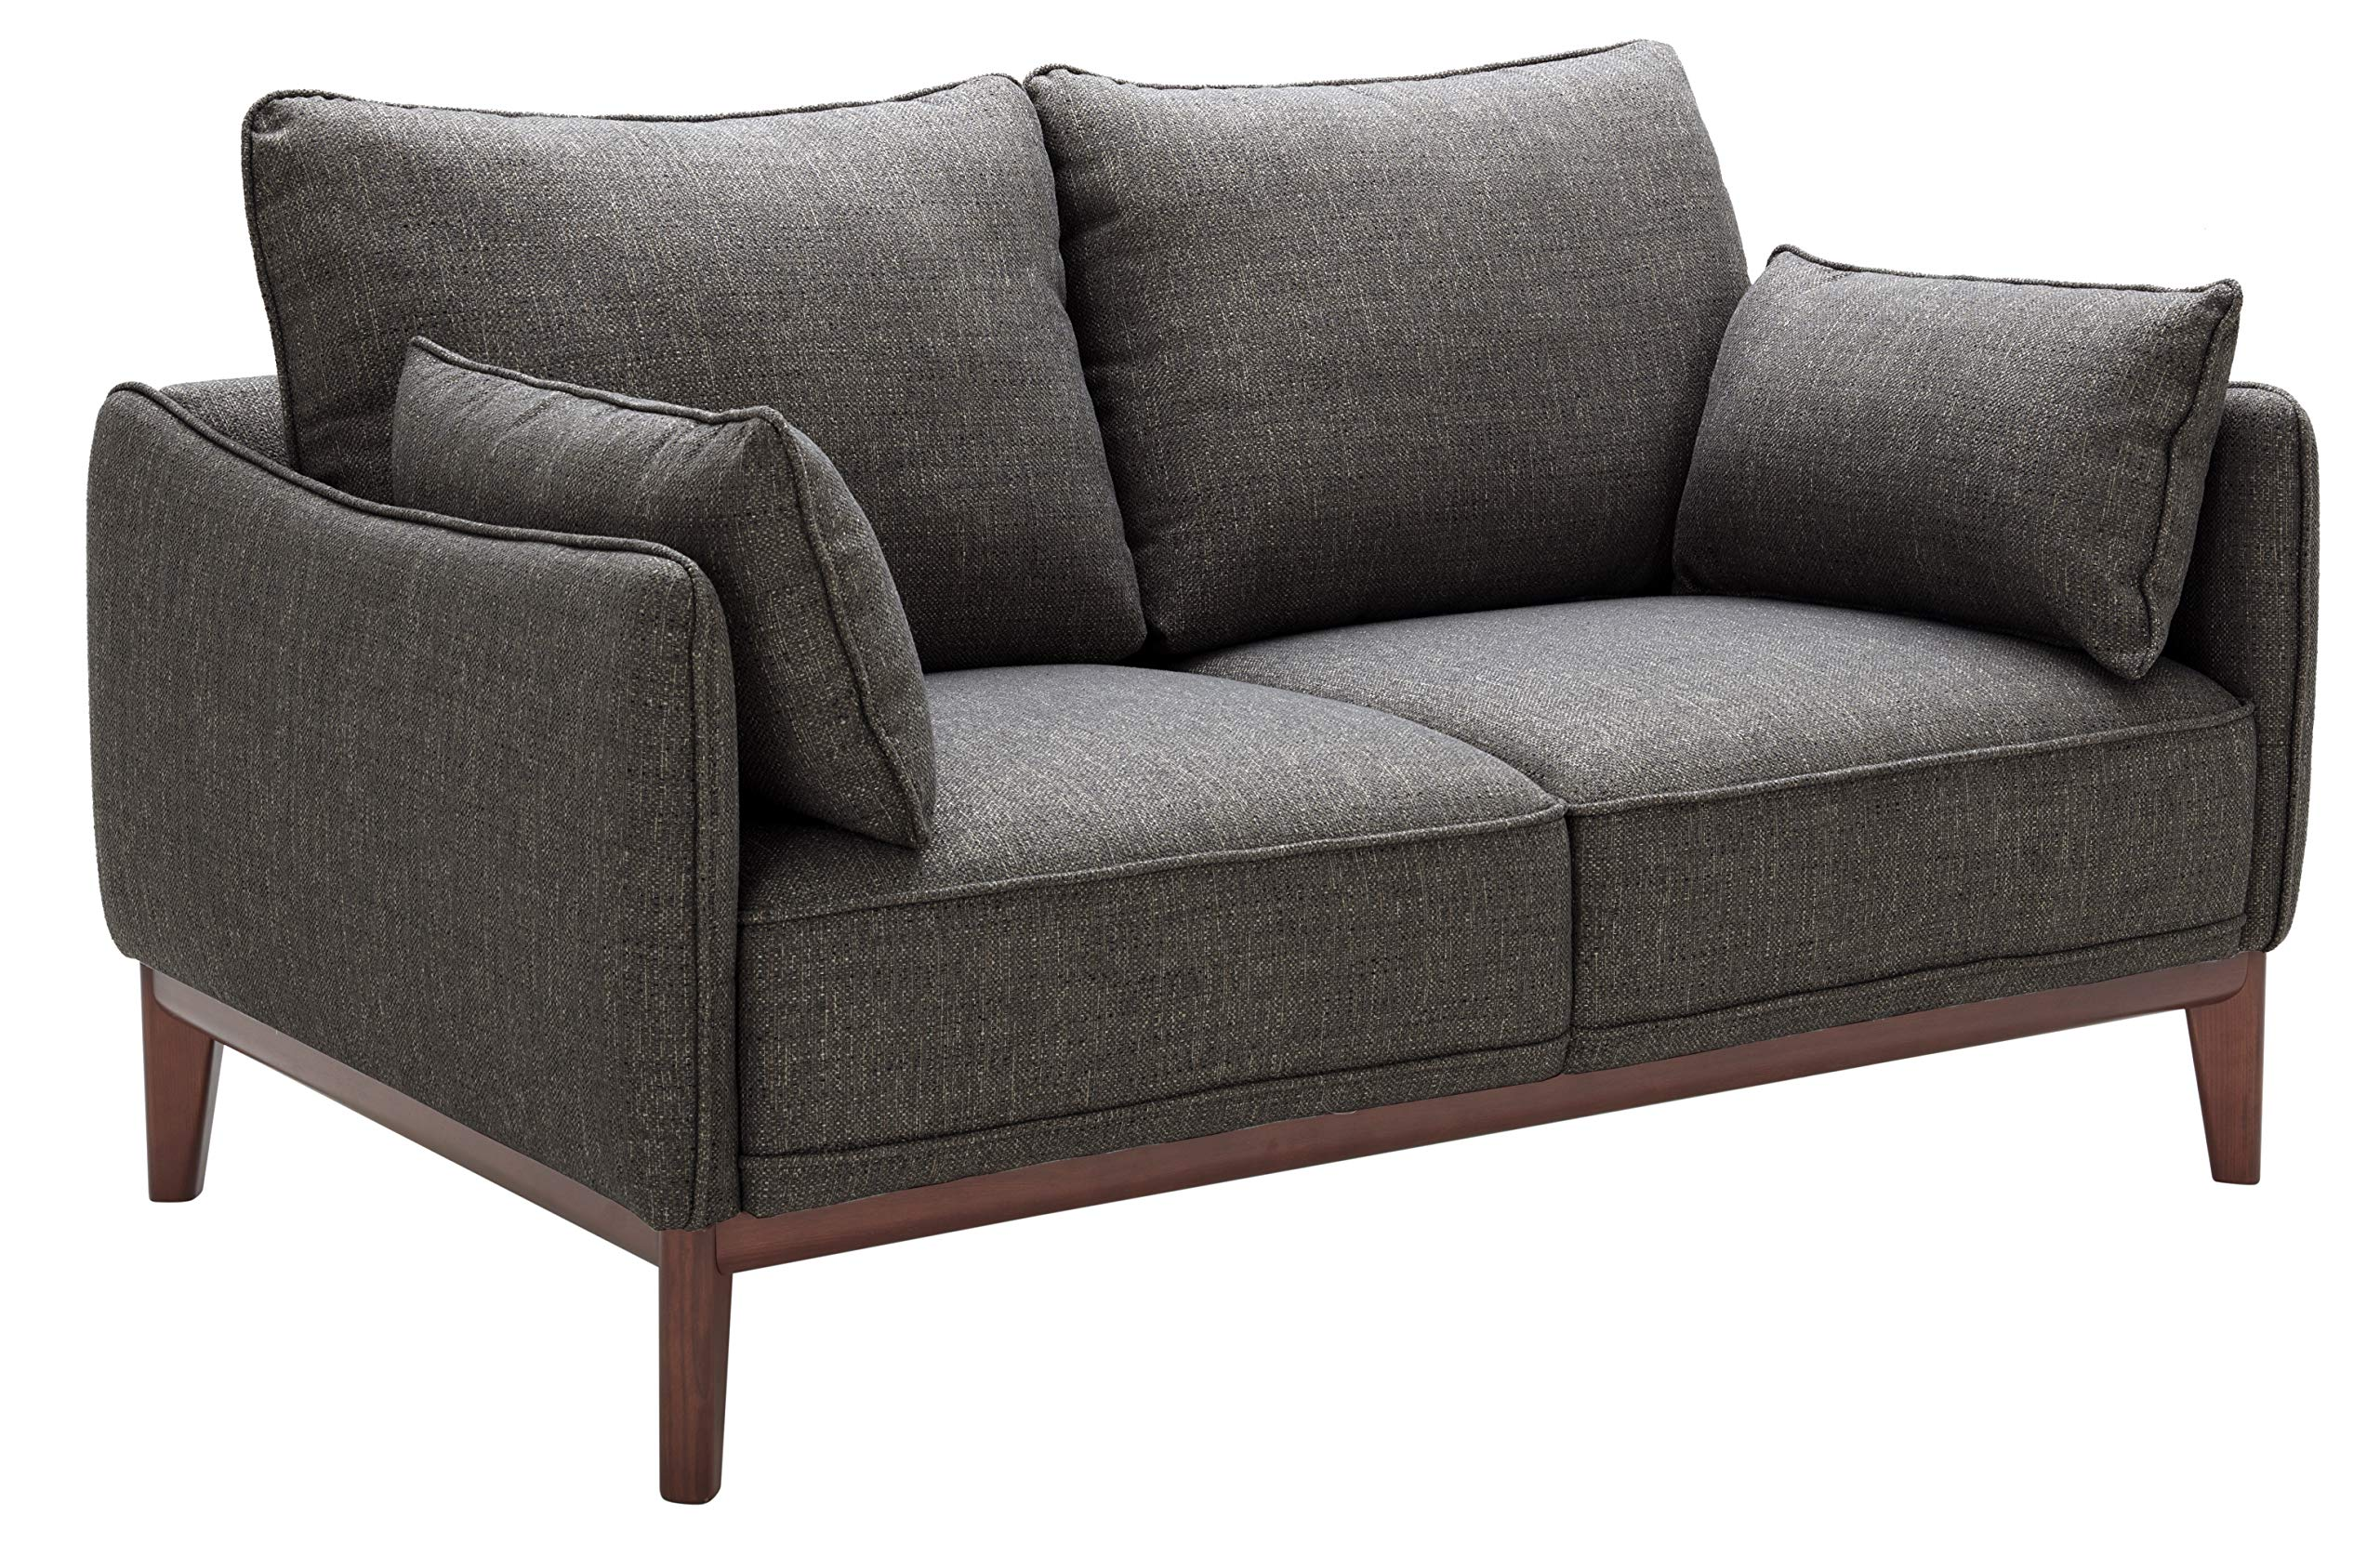 Stone & Beam Hillman Mid-Century Loveseat with Tapered Legs and Removable Cushions, 62''W, Fog by Stone & Beam